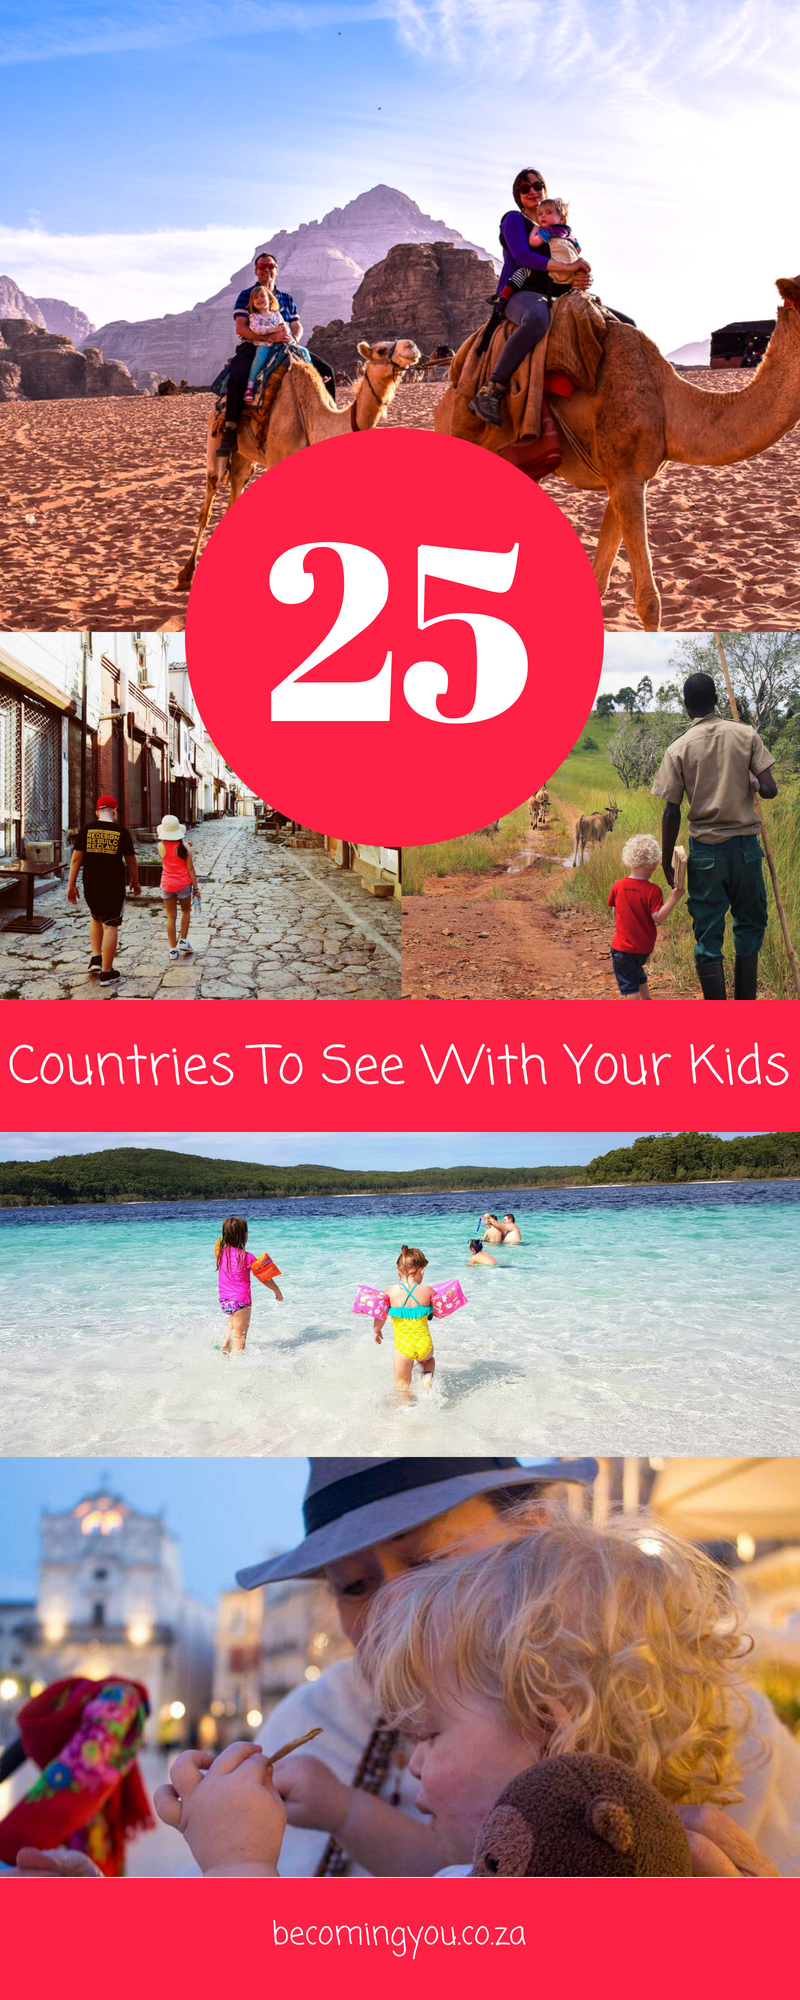 A Round Up Of 25 The Very Best Family Friendly Countries To Visit On Holiday As Nominated By Travel Bloggers In World And Their